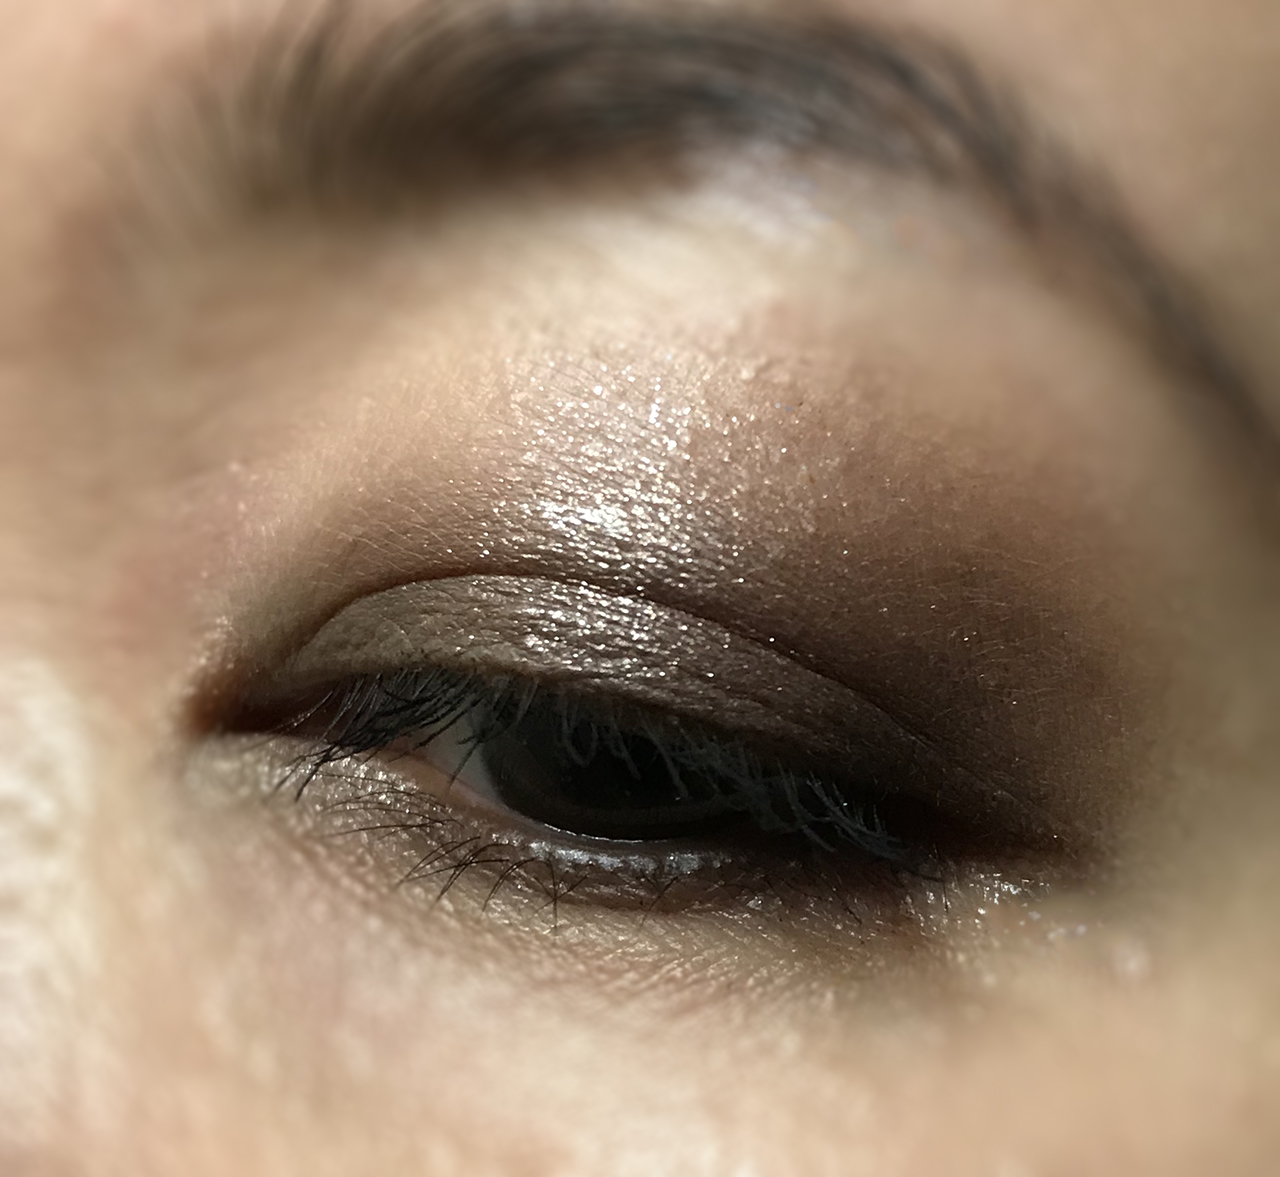 Chanel Les Beiges Natural Eyeshadow Palette eye makeup look